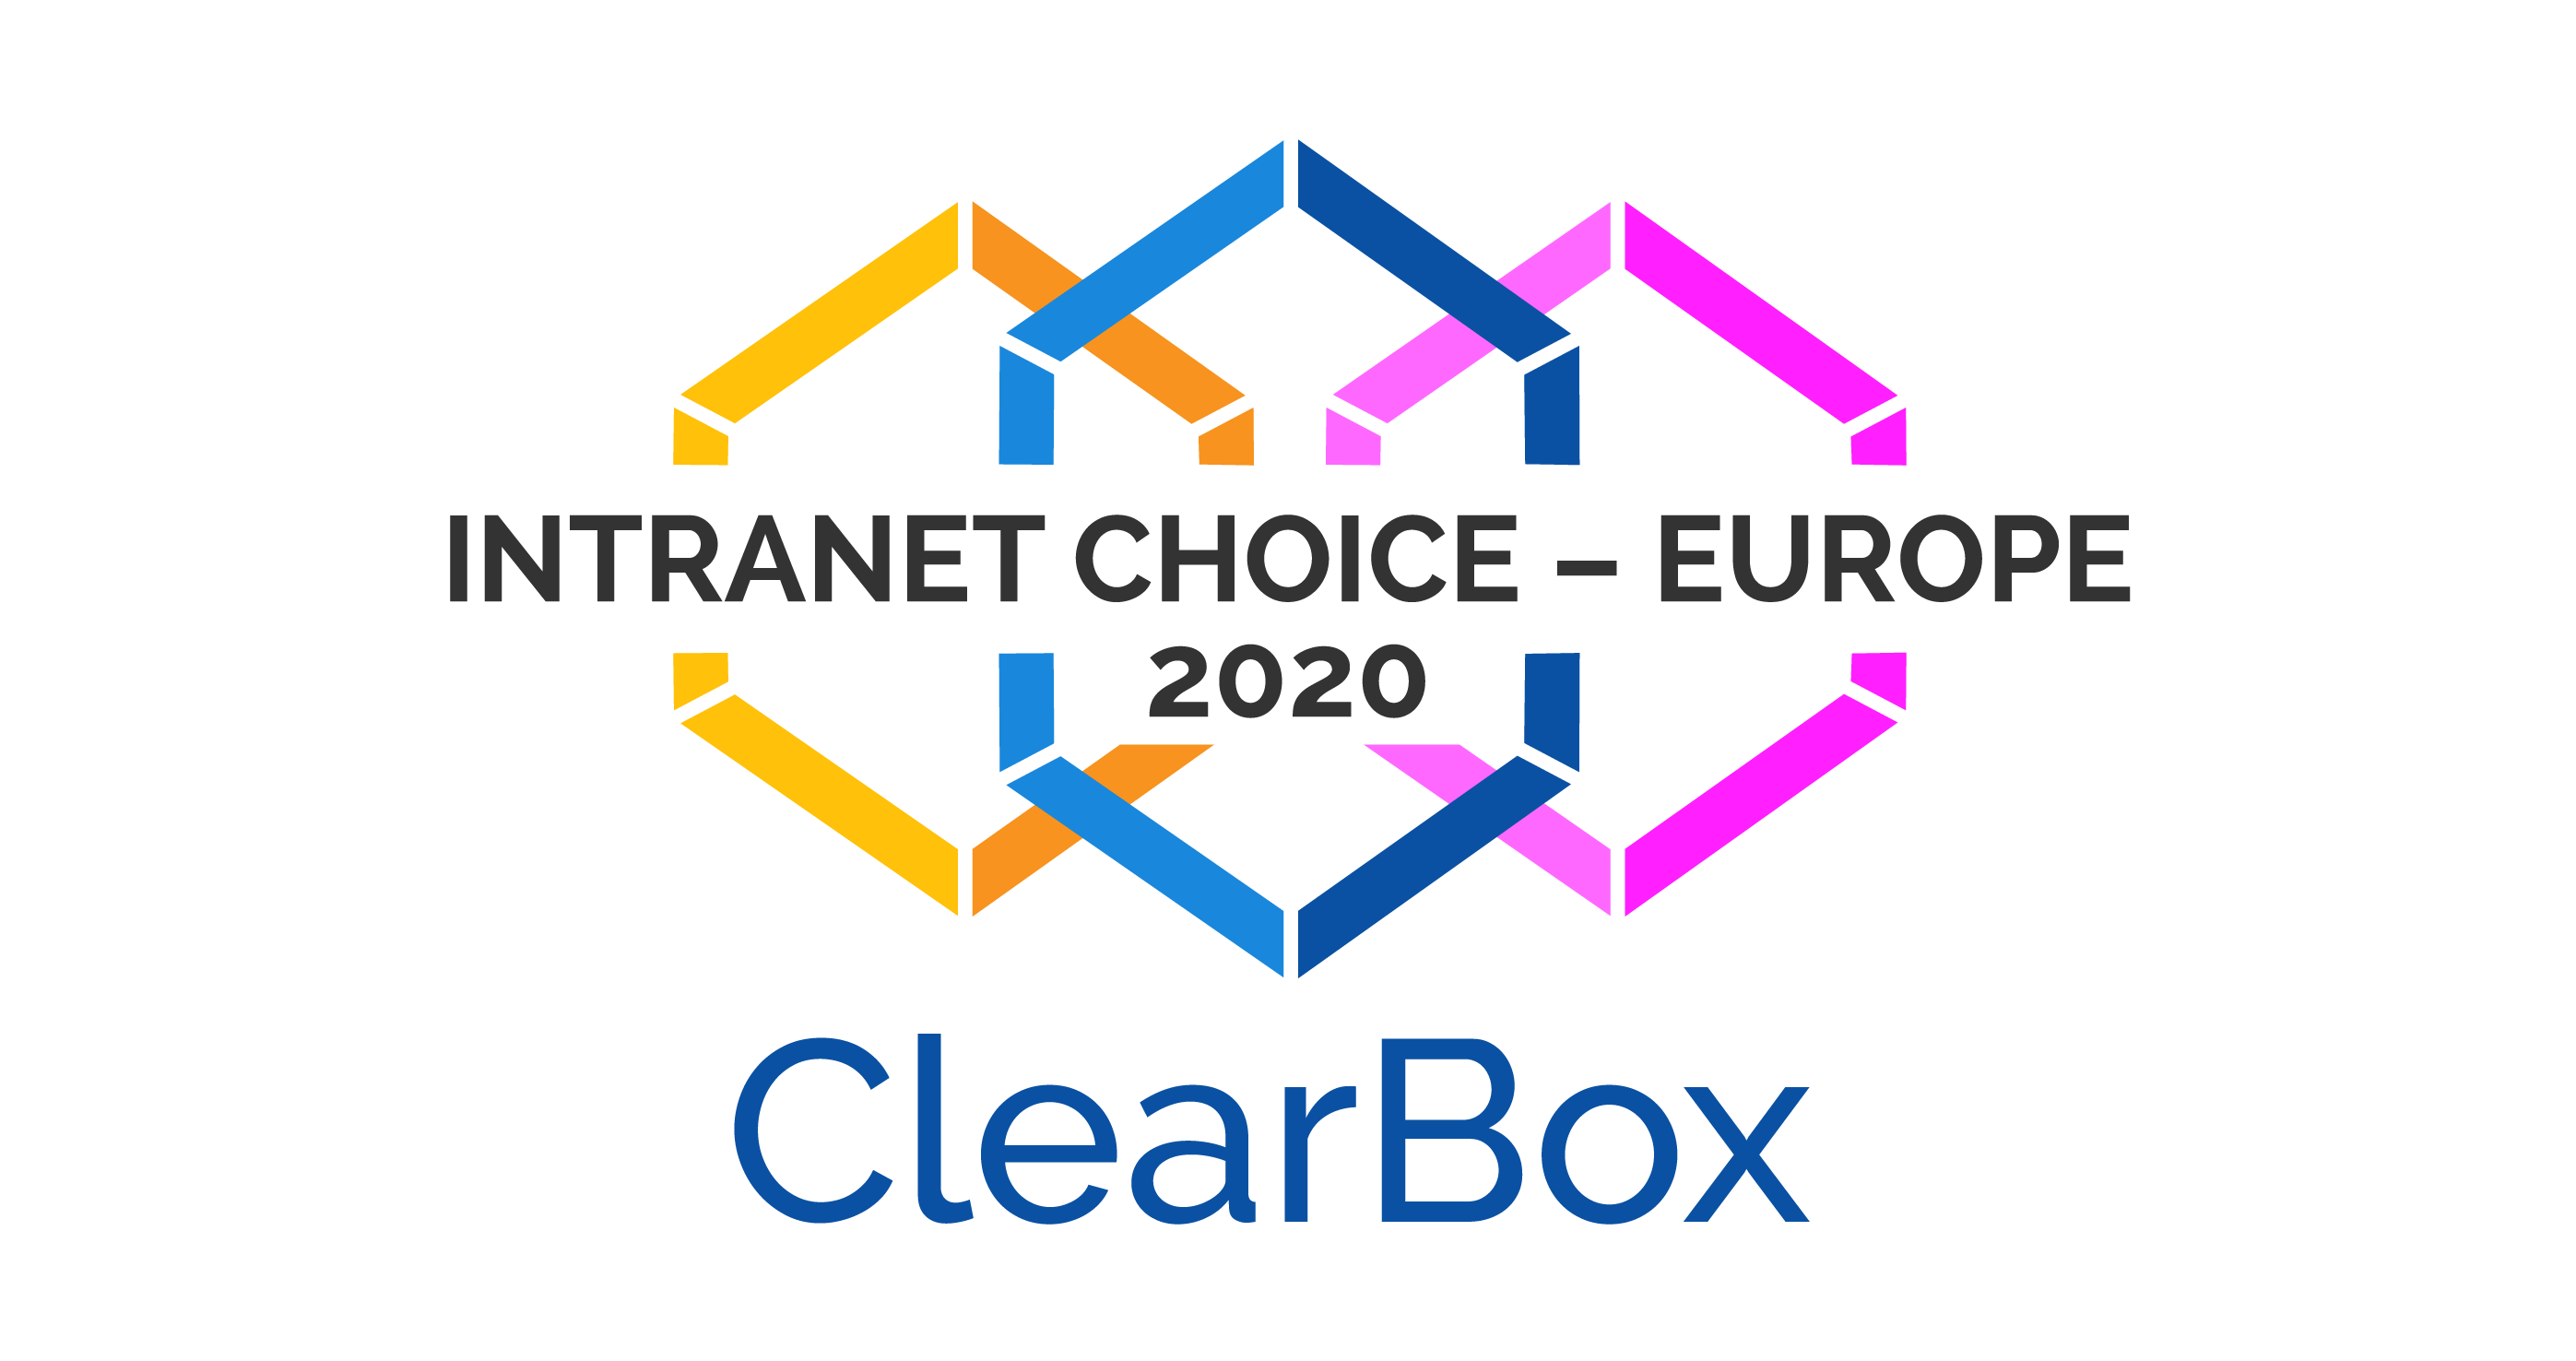 ClearBox Intranet Choice 2020 - Europe.